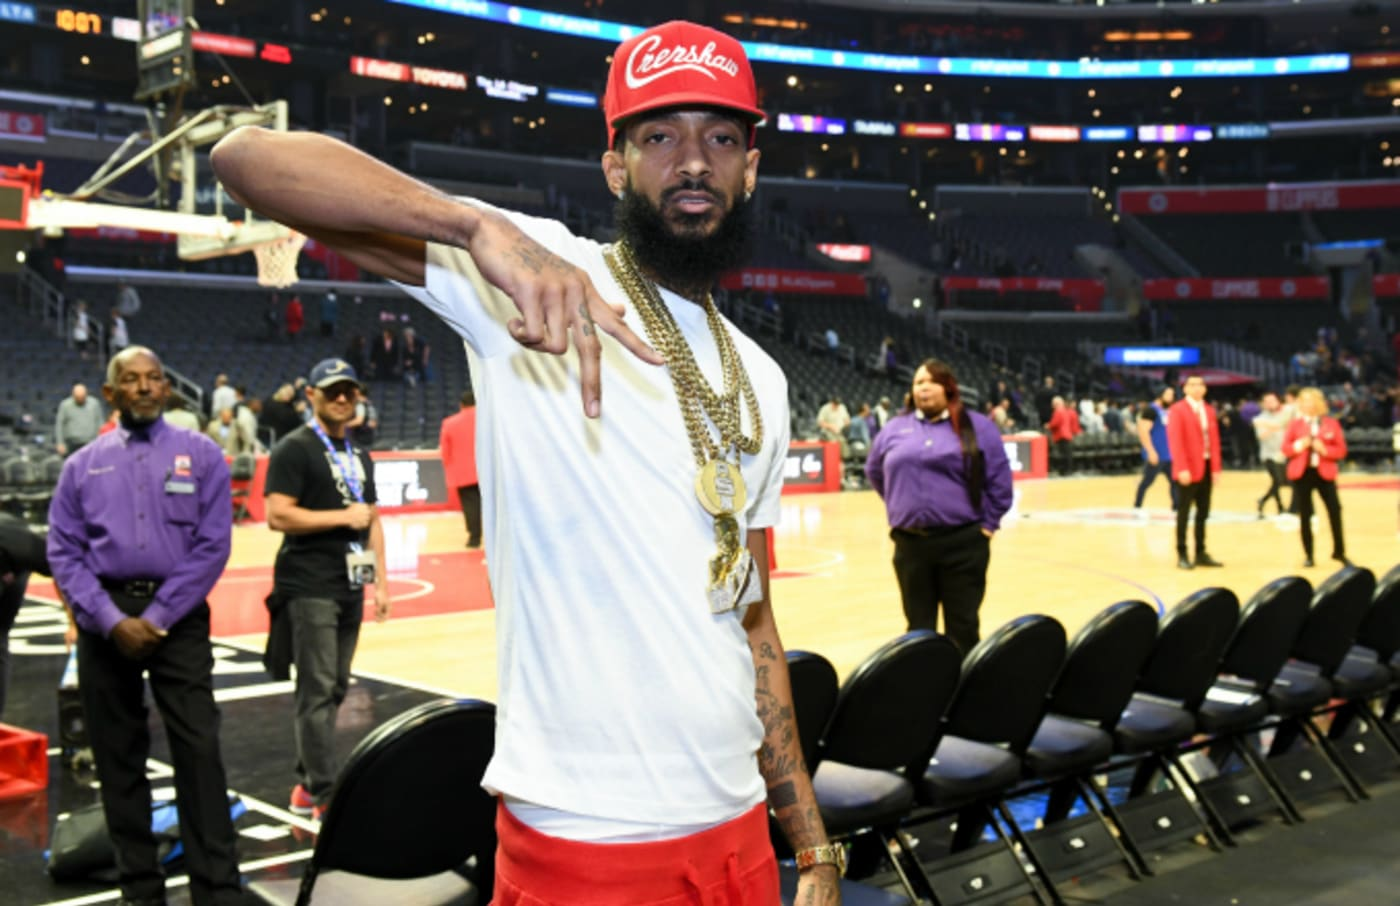 Rapper Nipsey Hussle attends a basketball game